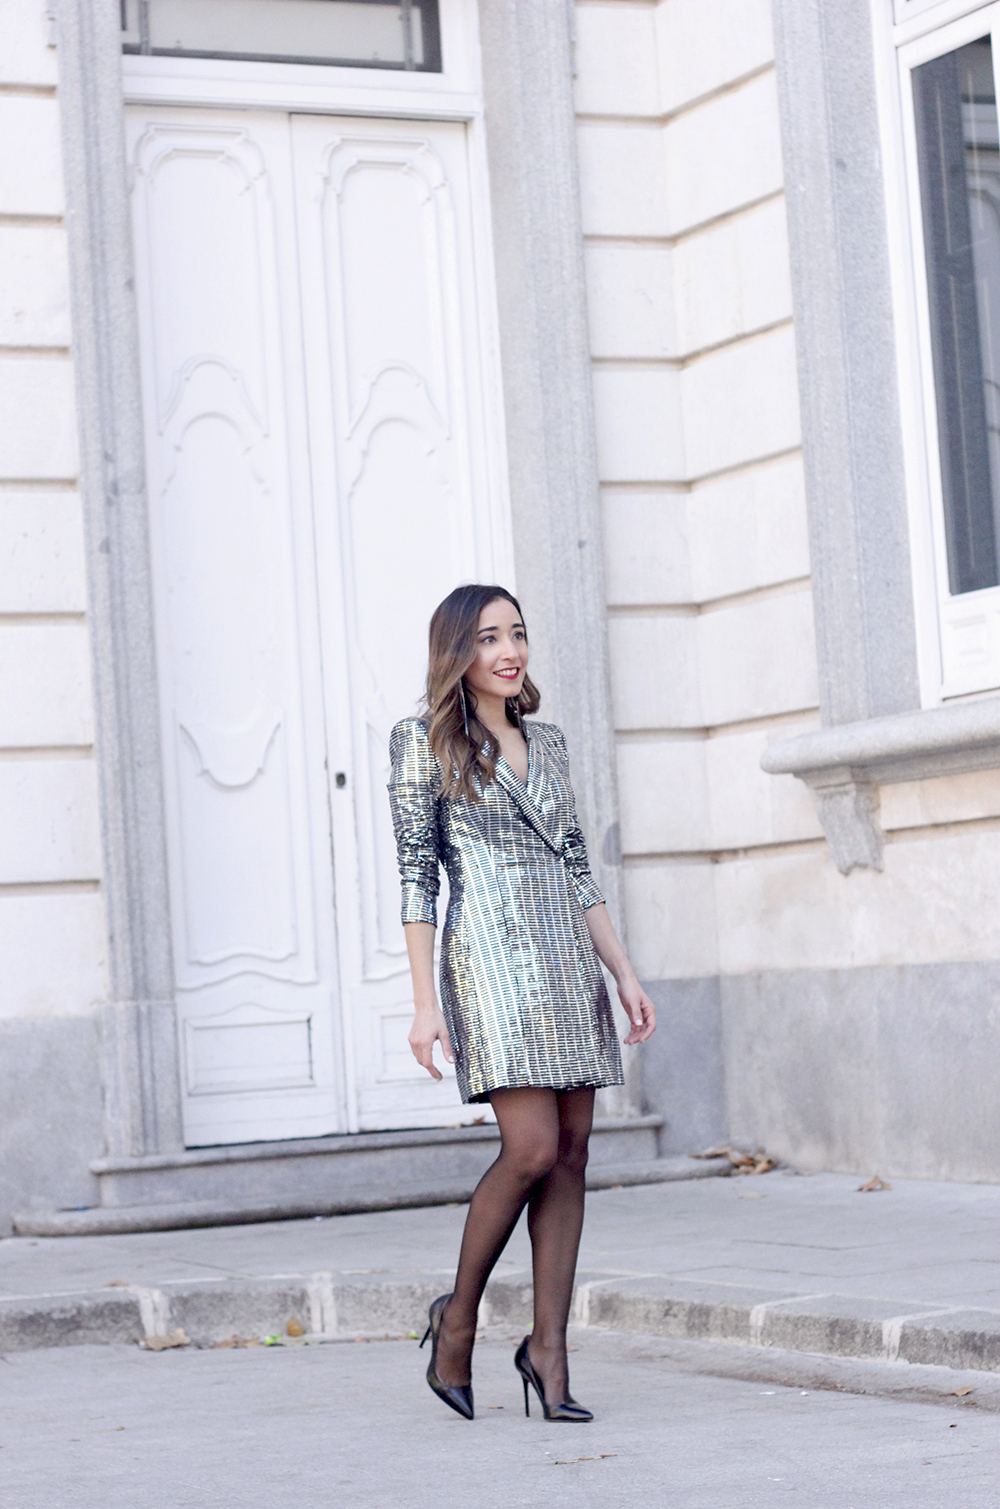 silver sequin dress zara heels christmas outfit look de fiesta party outfit06